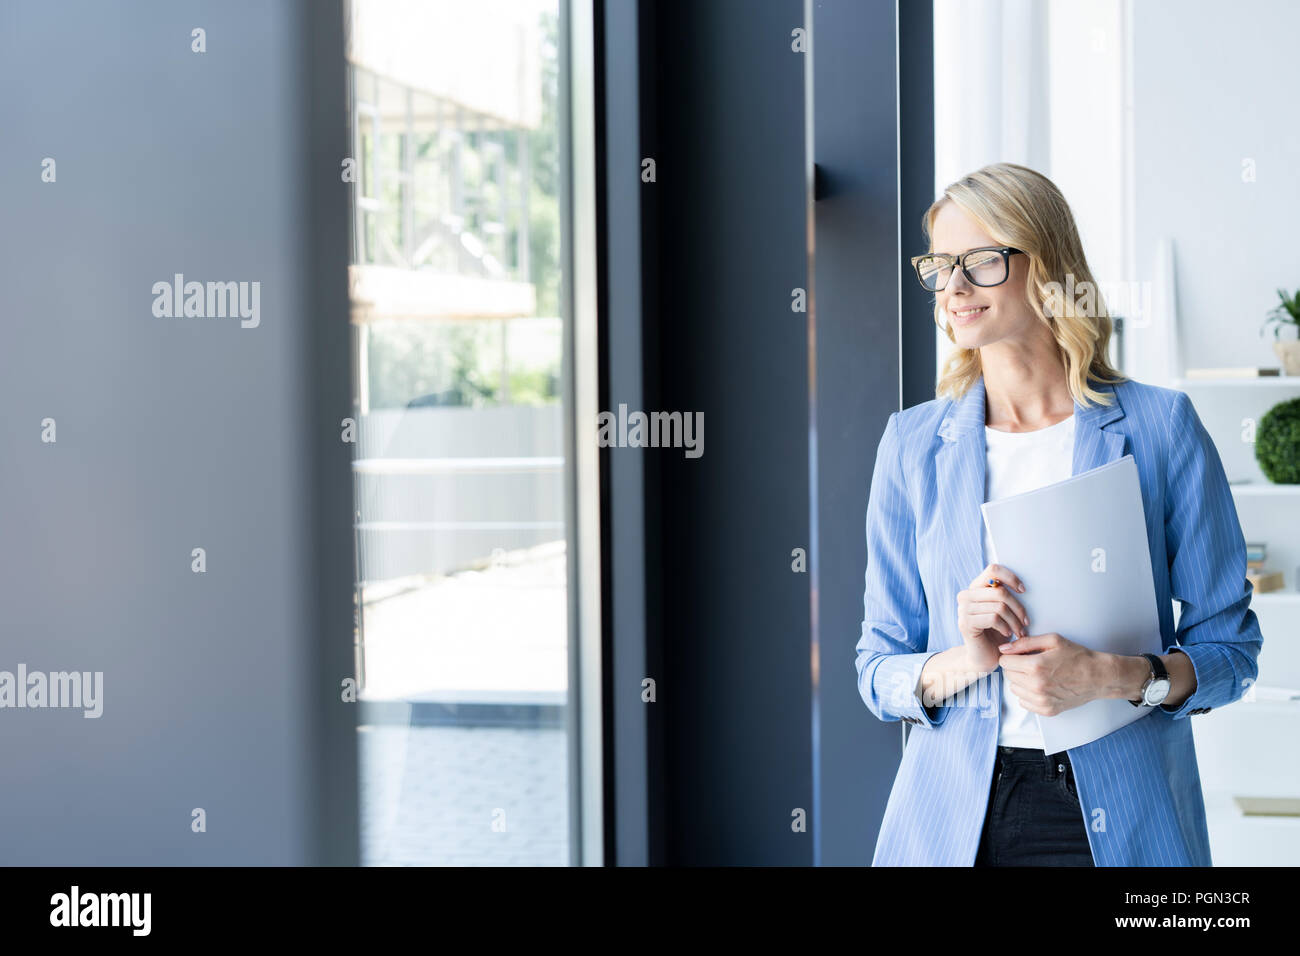 Modern business woman in the office with copy space. Stock Photo